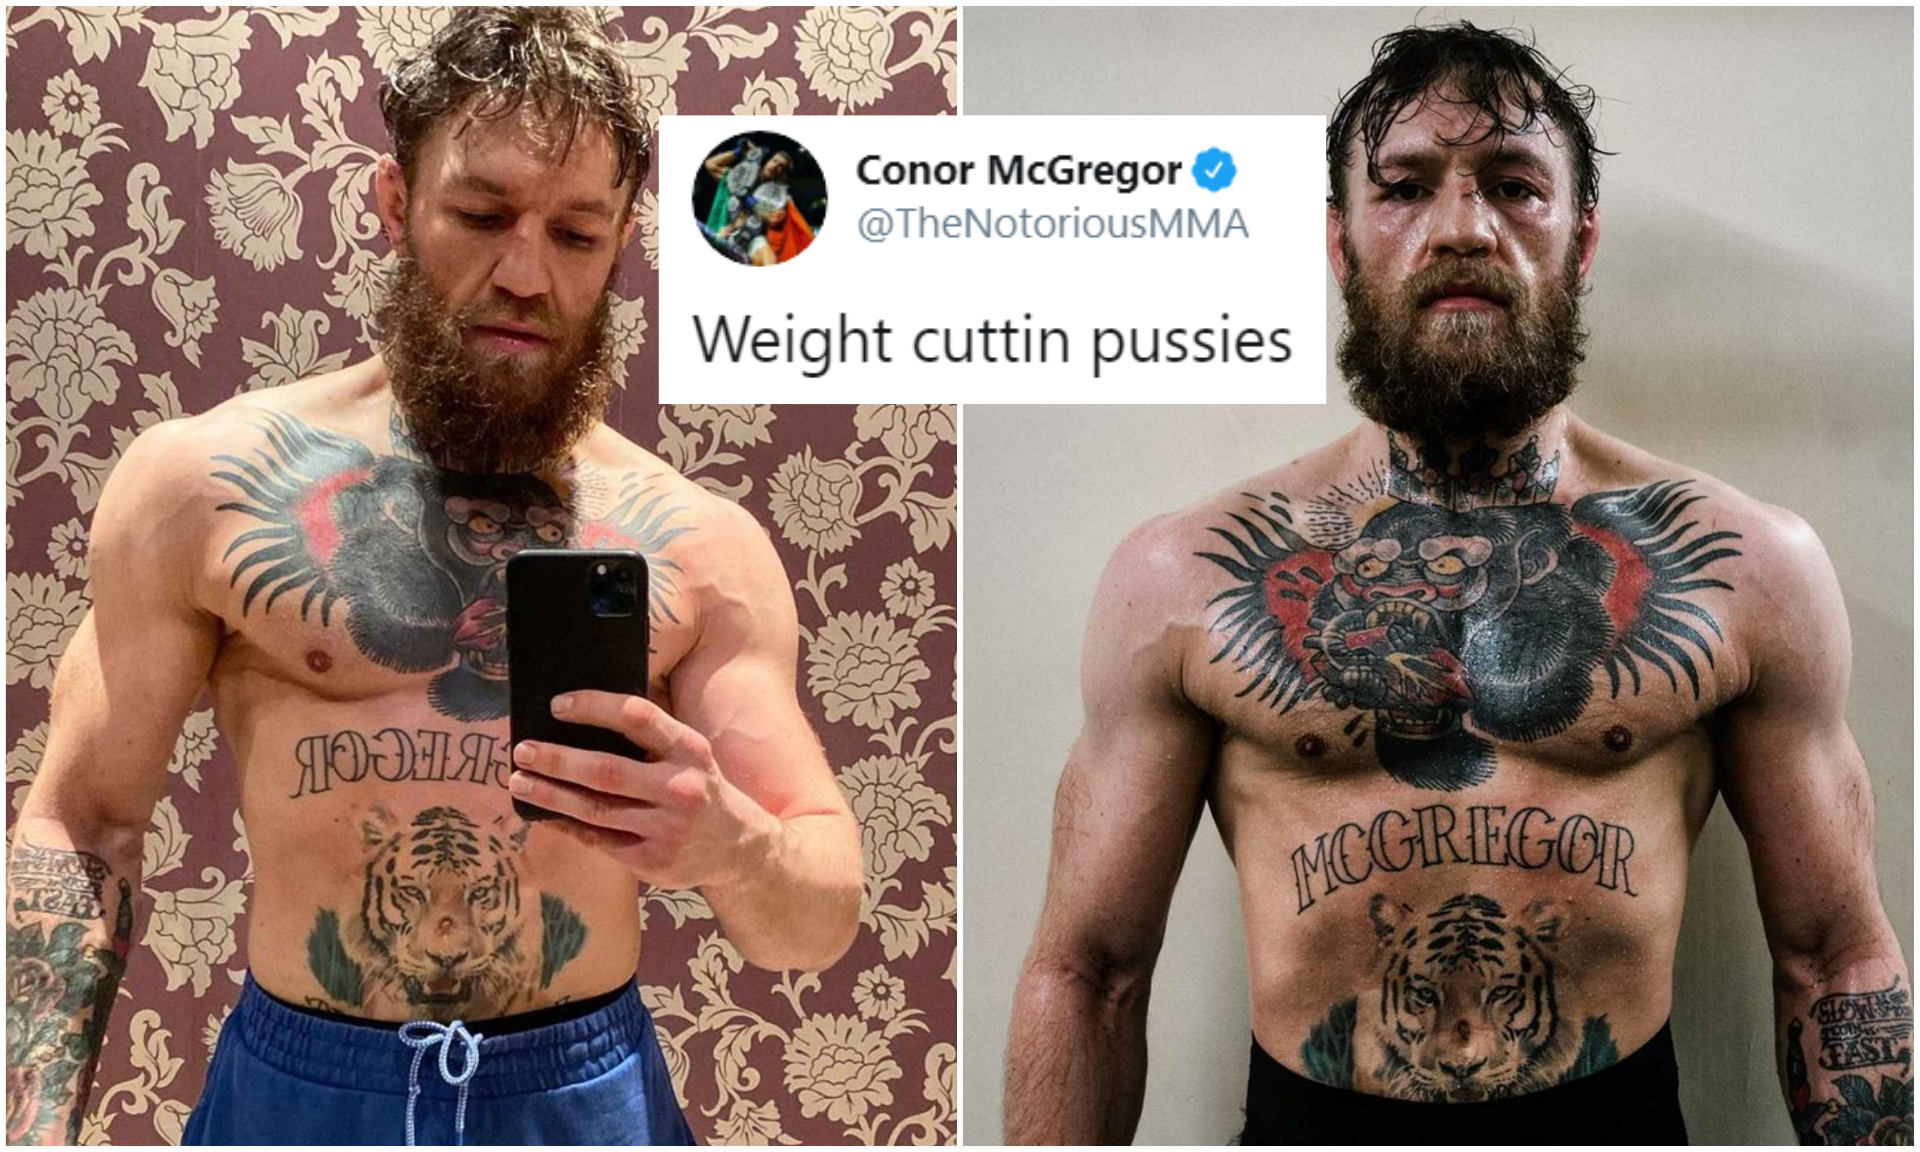 Conor McGregor trolls fighters who cut massive weight to take on smaller fighters; looks big ahead of Cerrone clash - Conor